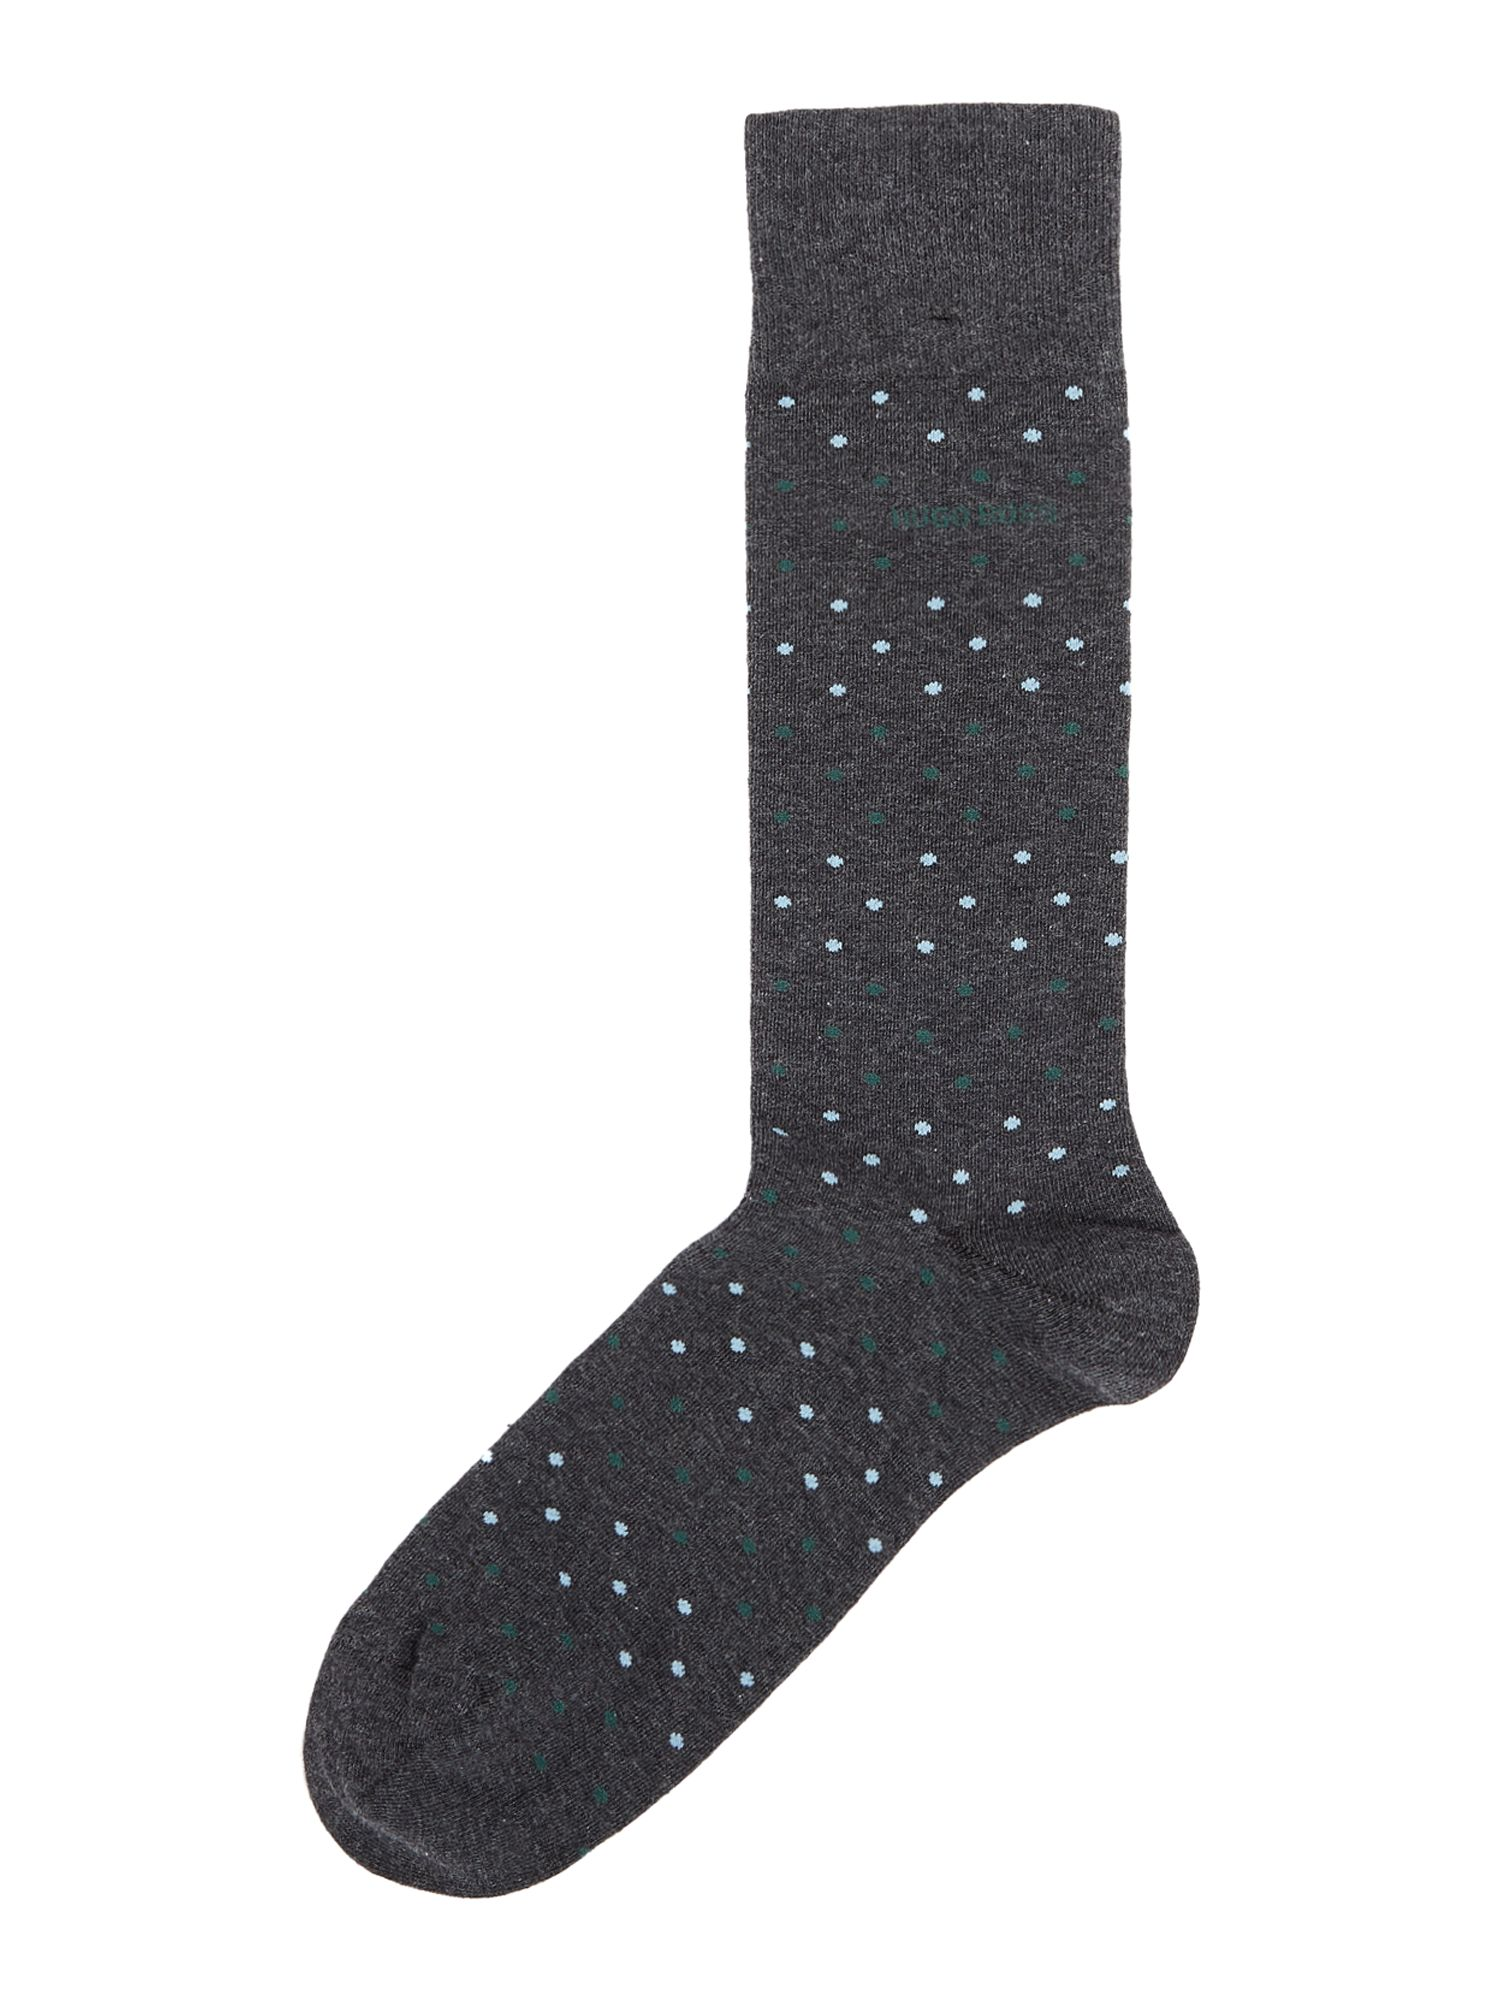 Mens Hugo Boss Multi Dot Cotton Socks Charcoal